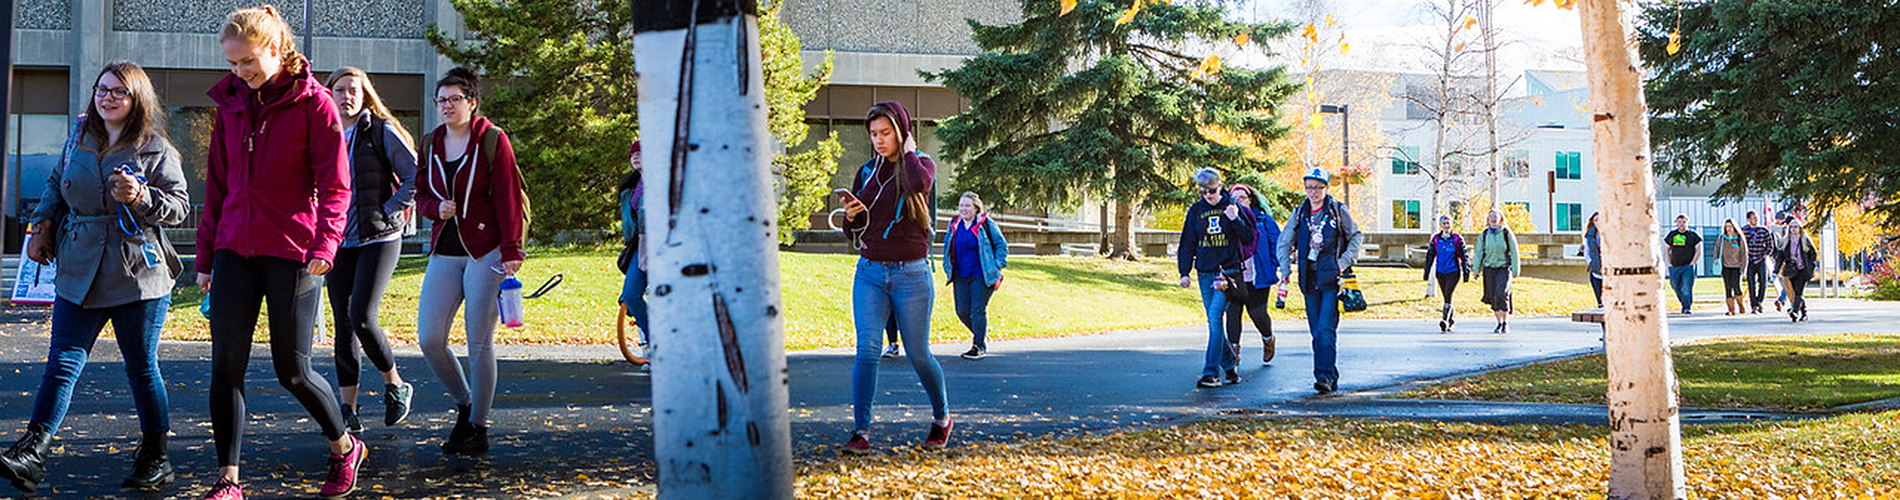 Students walking across the UAF campus.